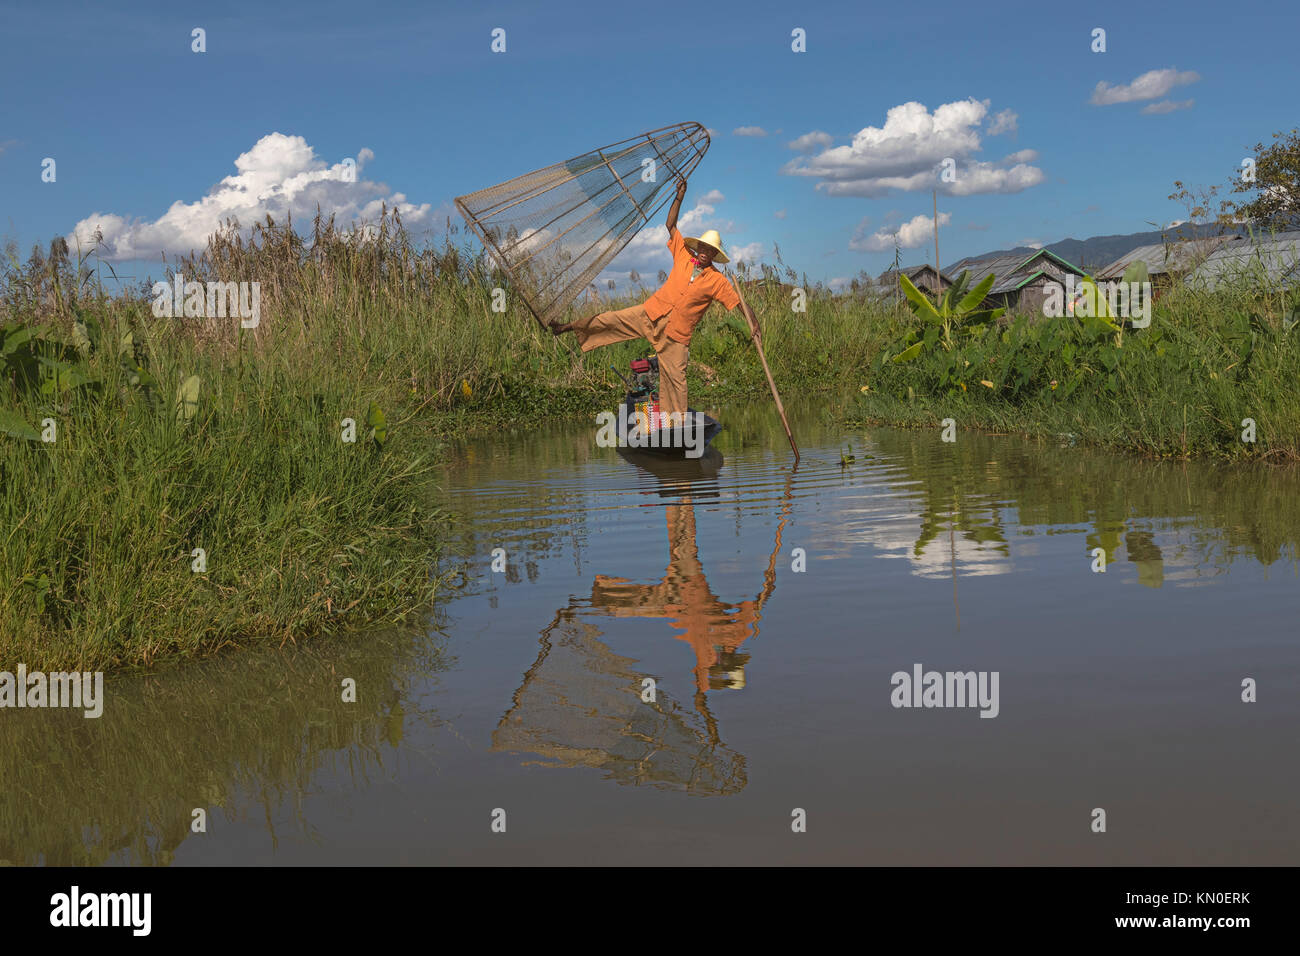 Fisherman, Inle Lake, Myanmar, Asia - Stock Image